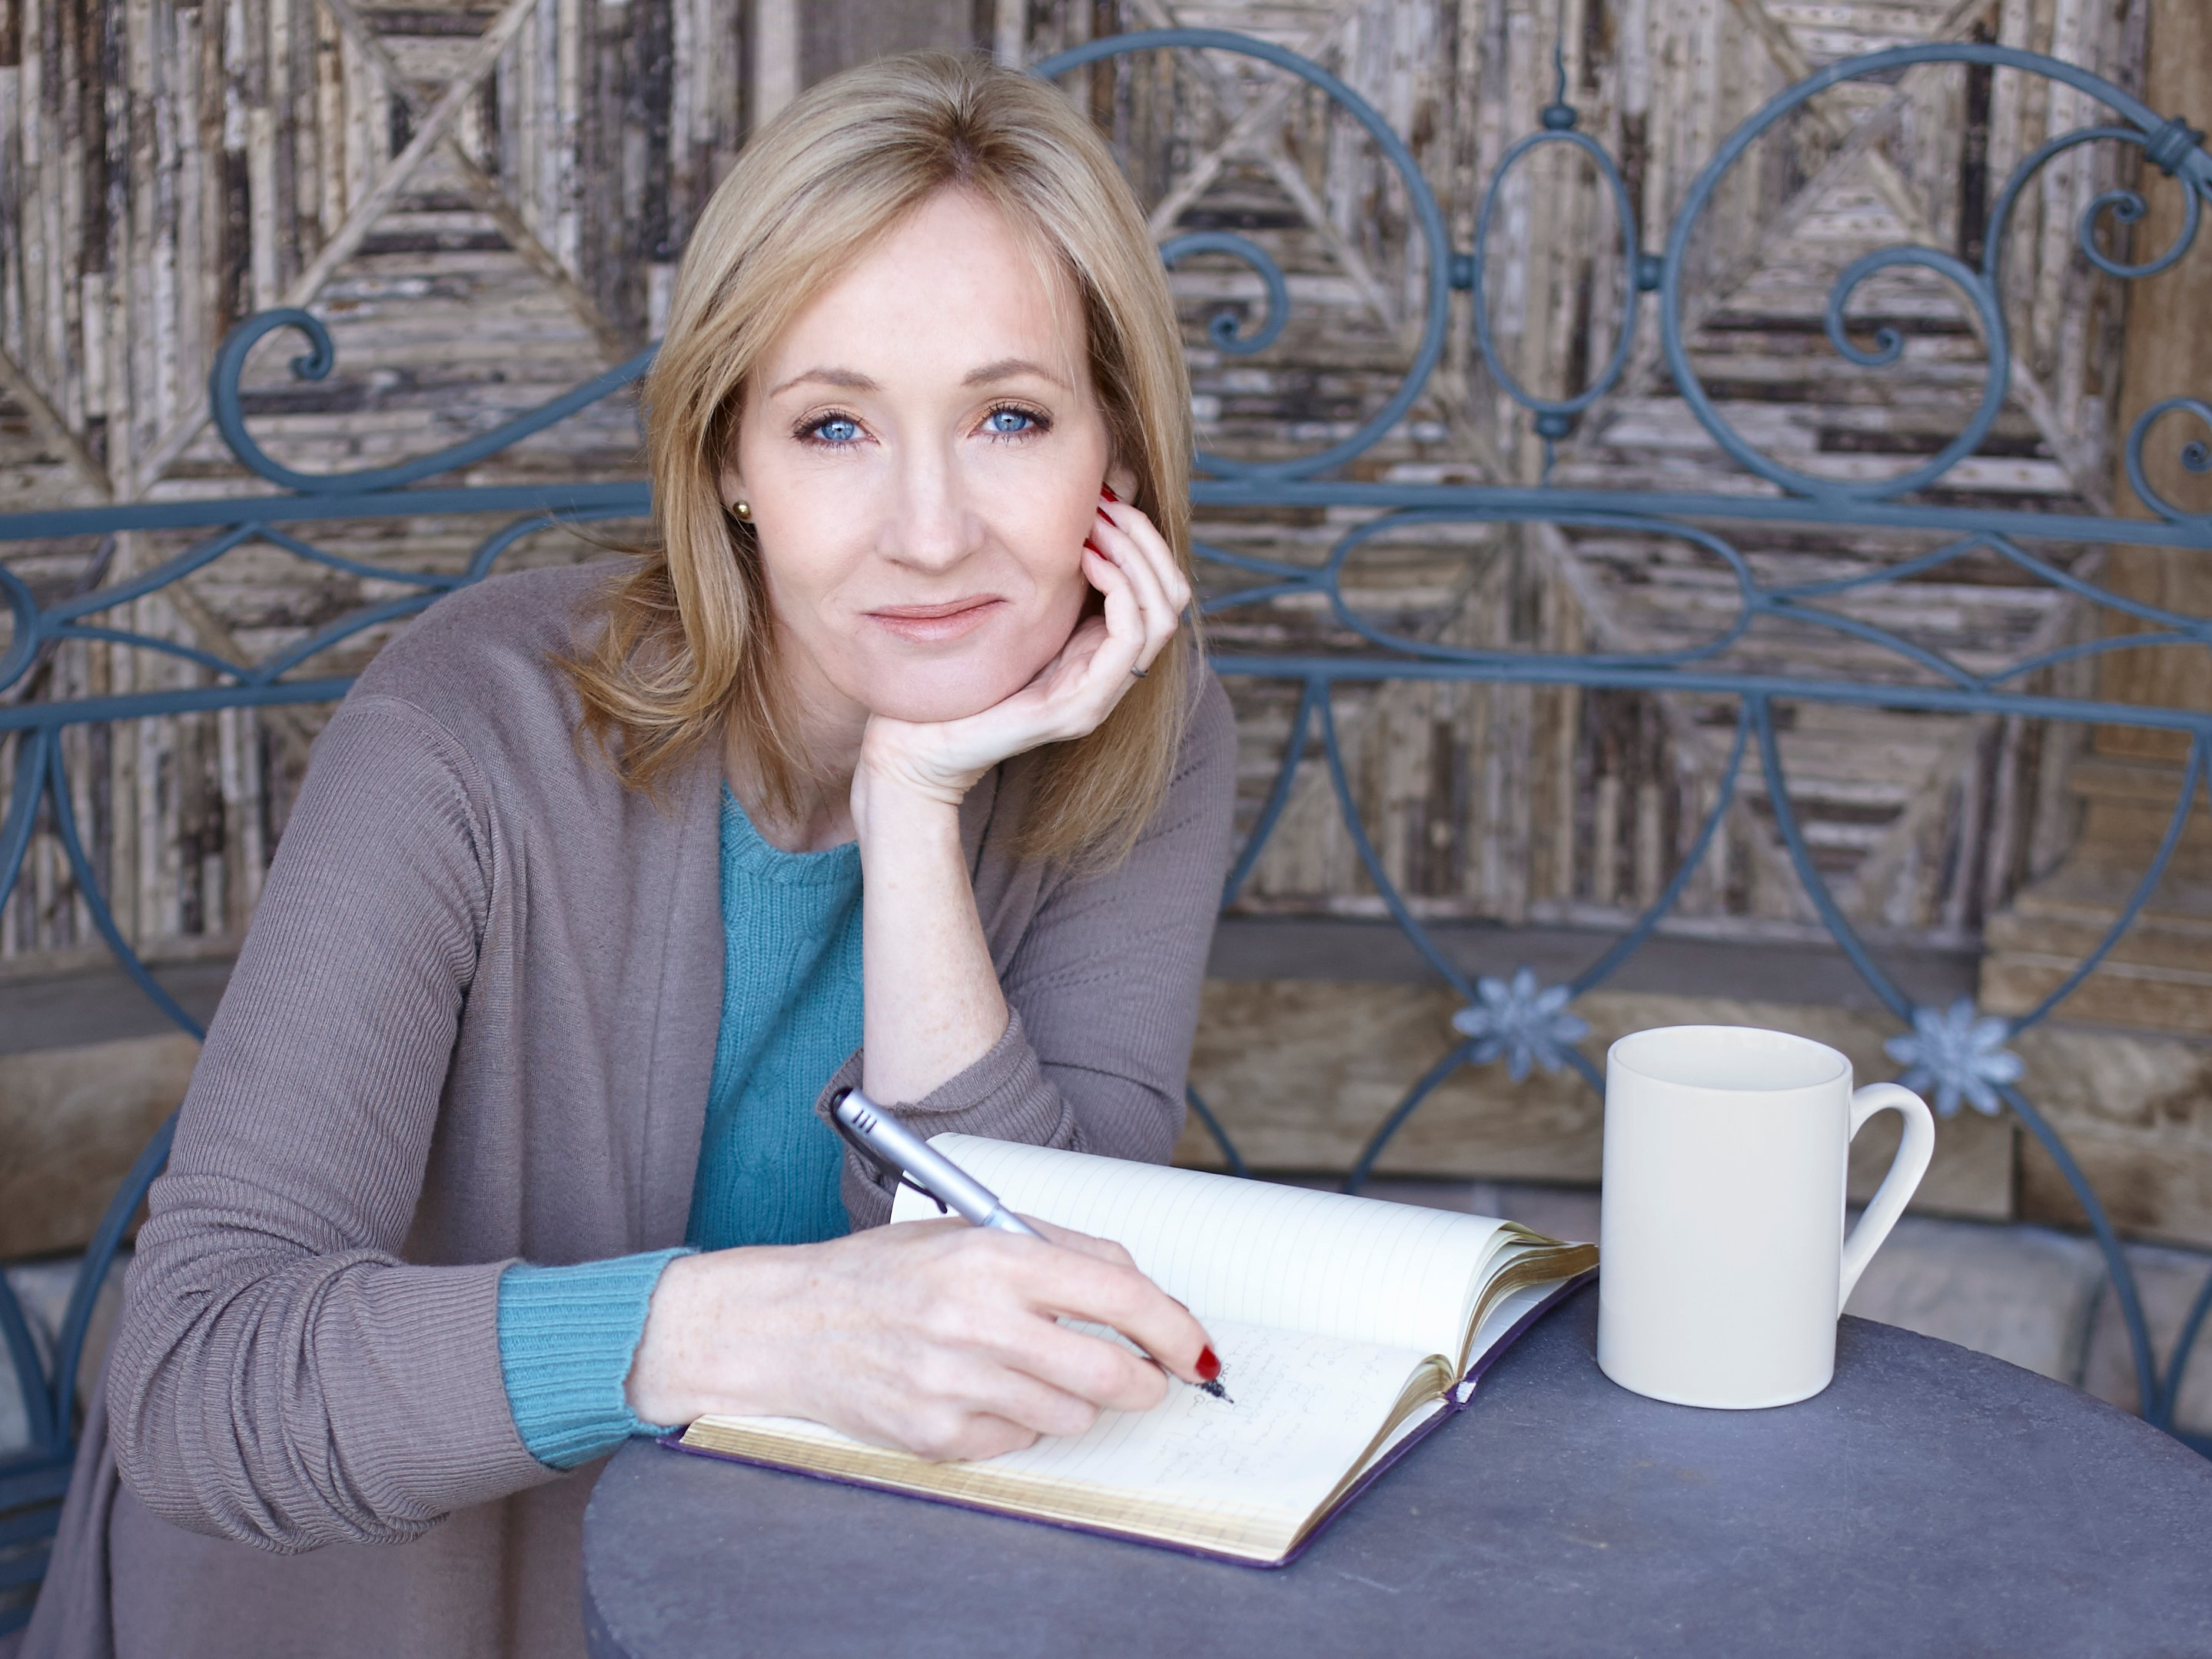 Image: Twitter suspends accounts tweeting in support of J.K. Rowling